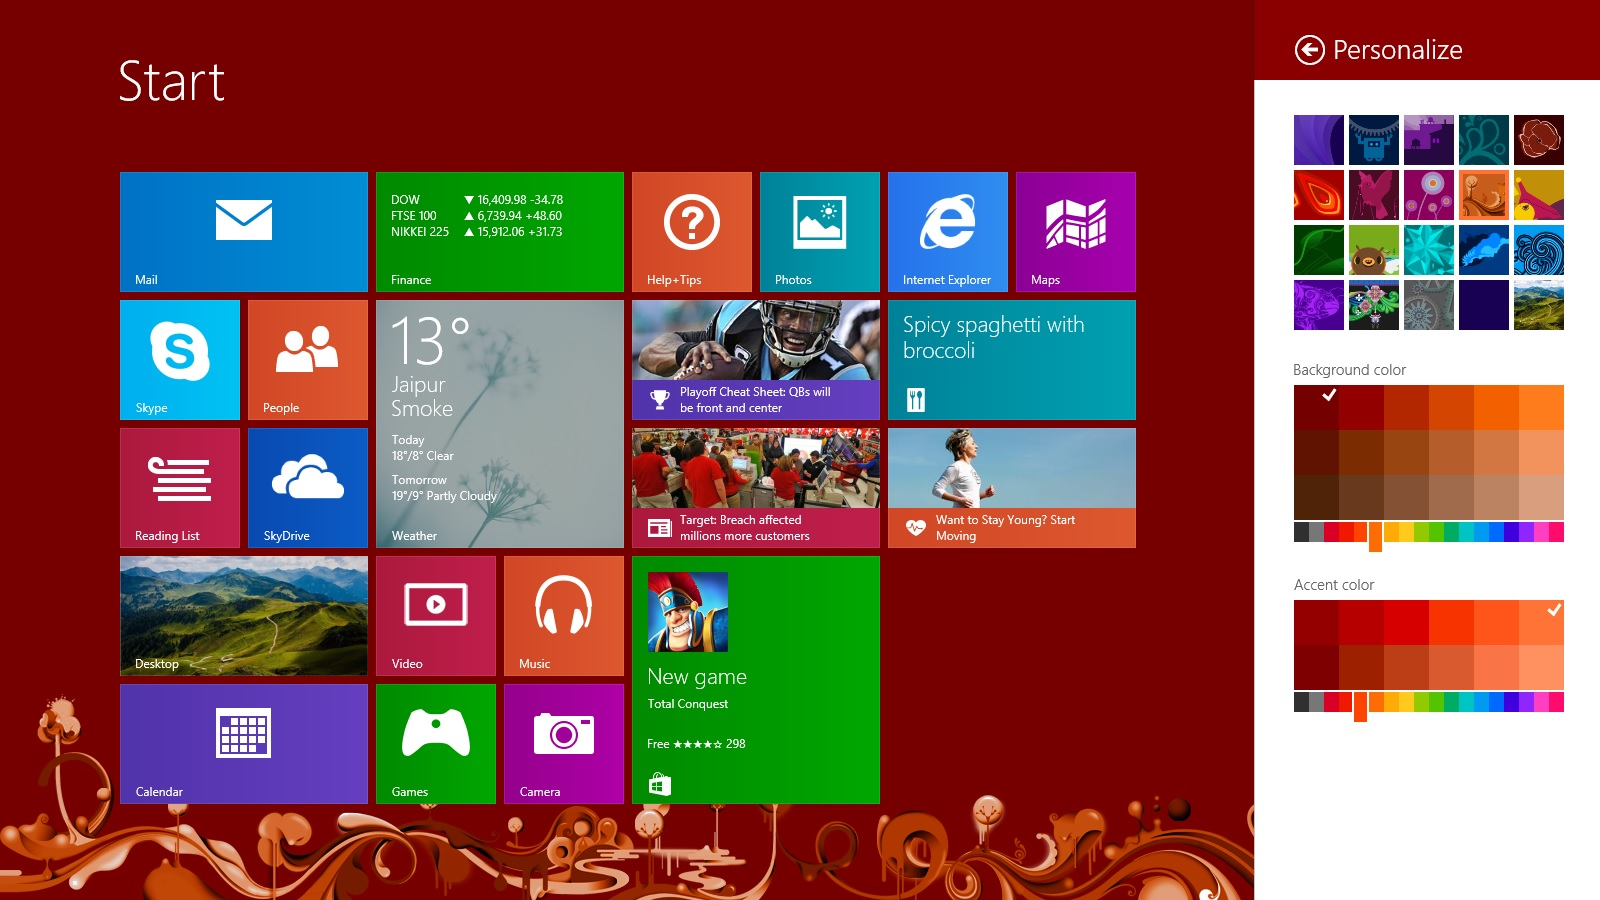 To change or personalize color and design  Go to Home Screen then on 1600x900